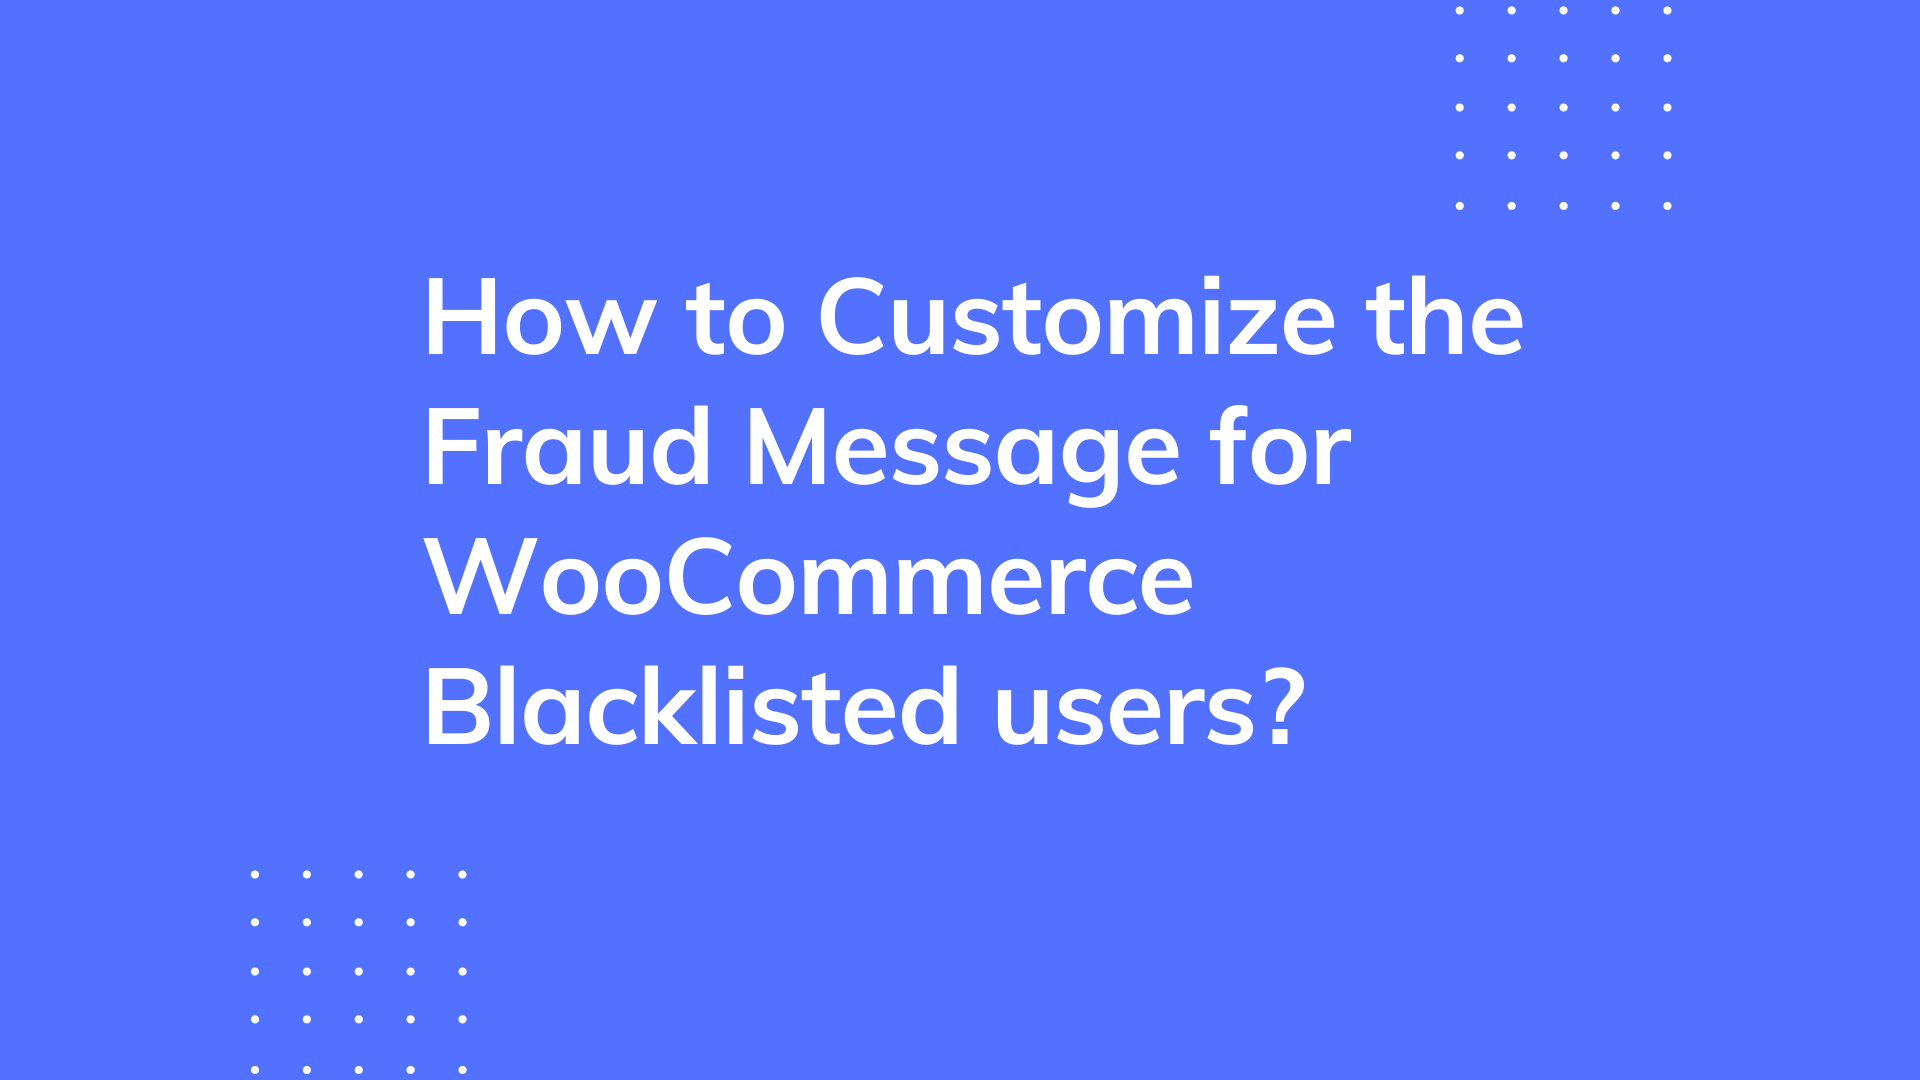 How to customize the fraud message for WooCommerce blacklisted users?